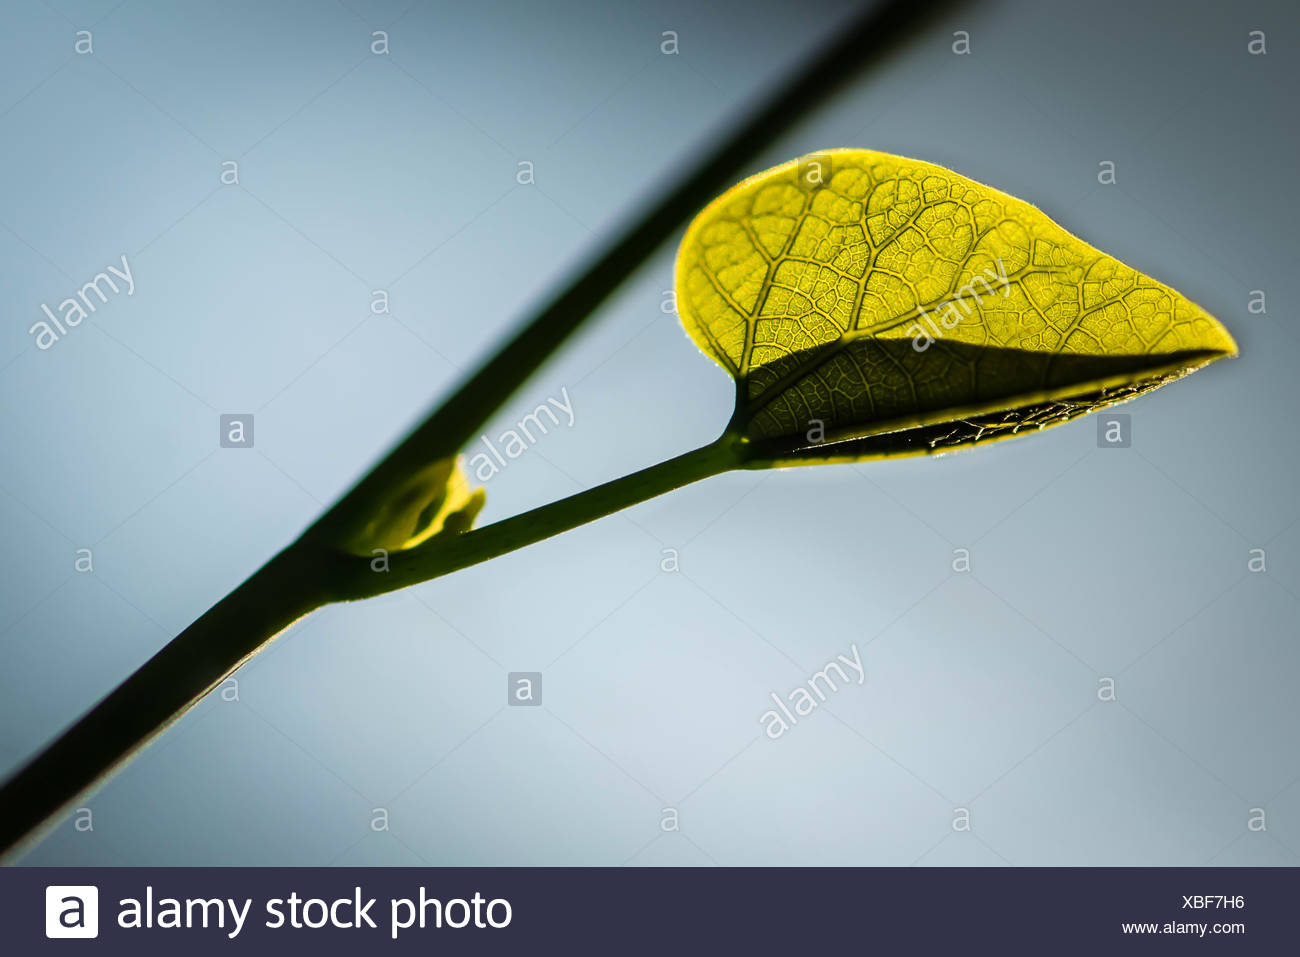 New leaf budding out of vine - Stock Image